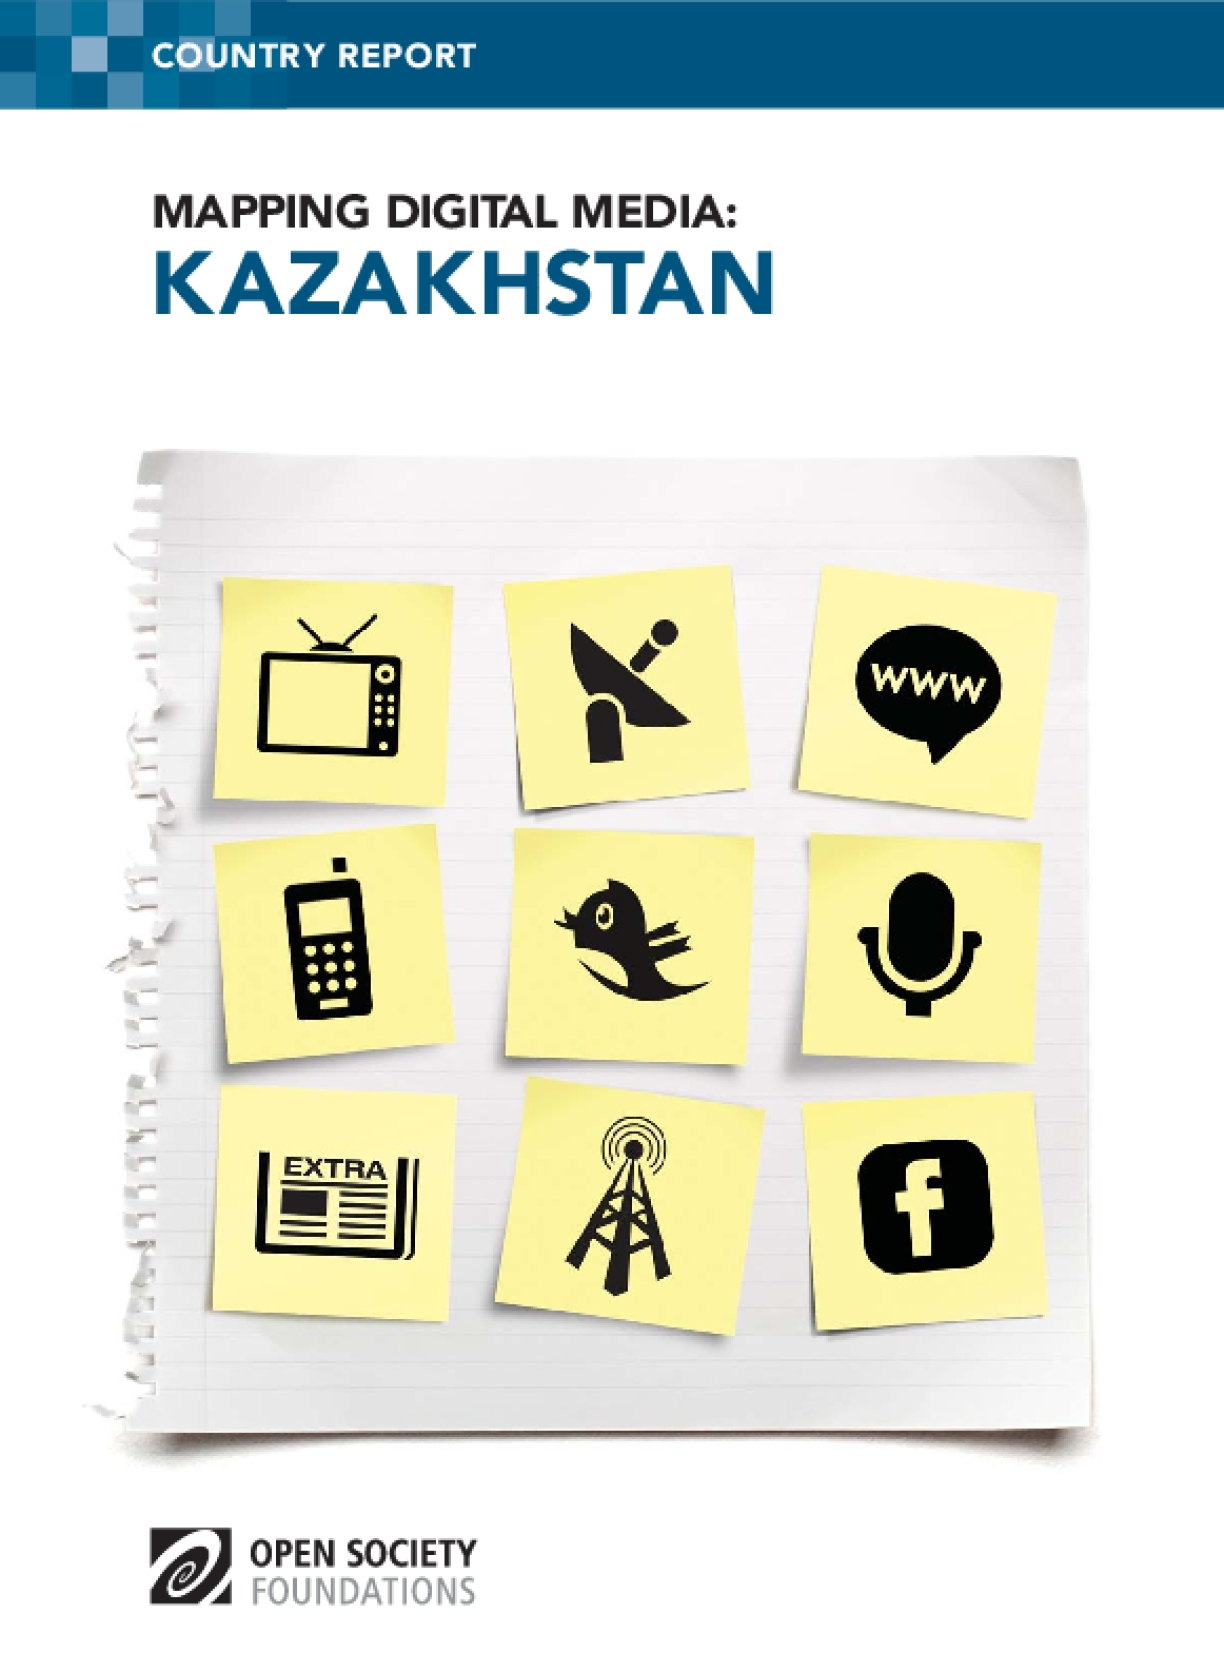 Mapping Digital Media: Kazakhstan